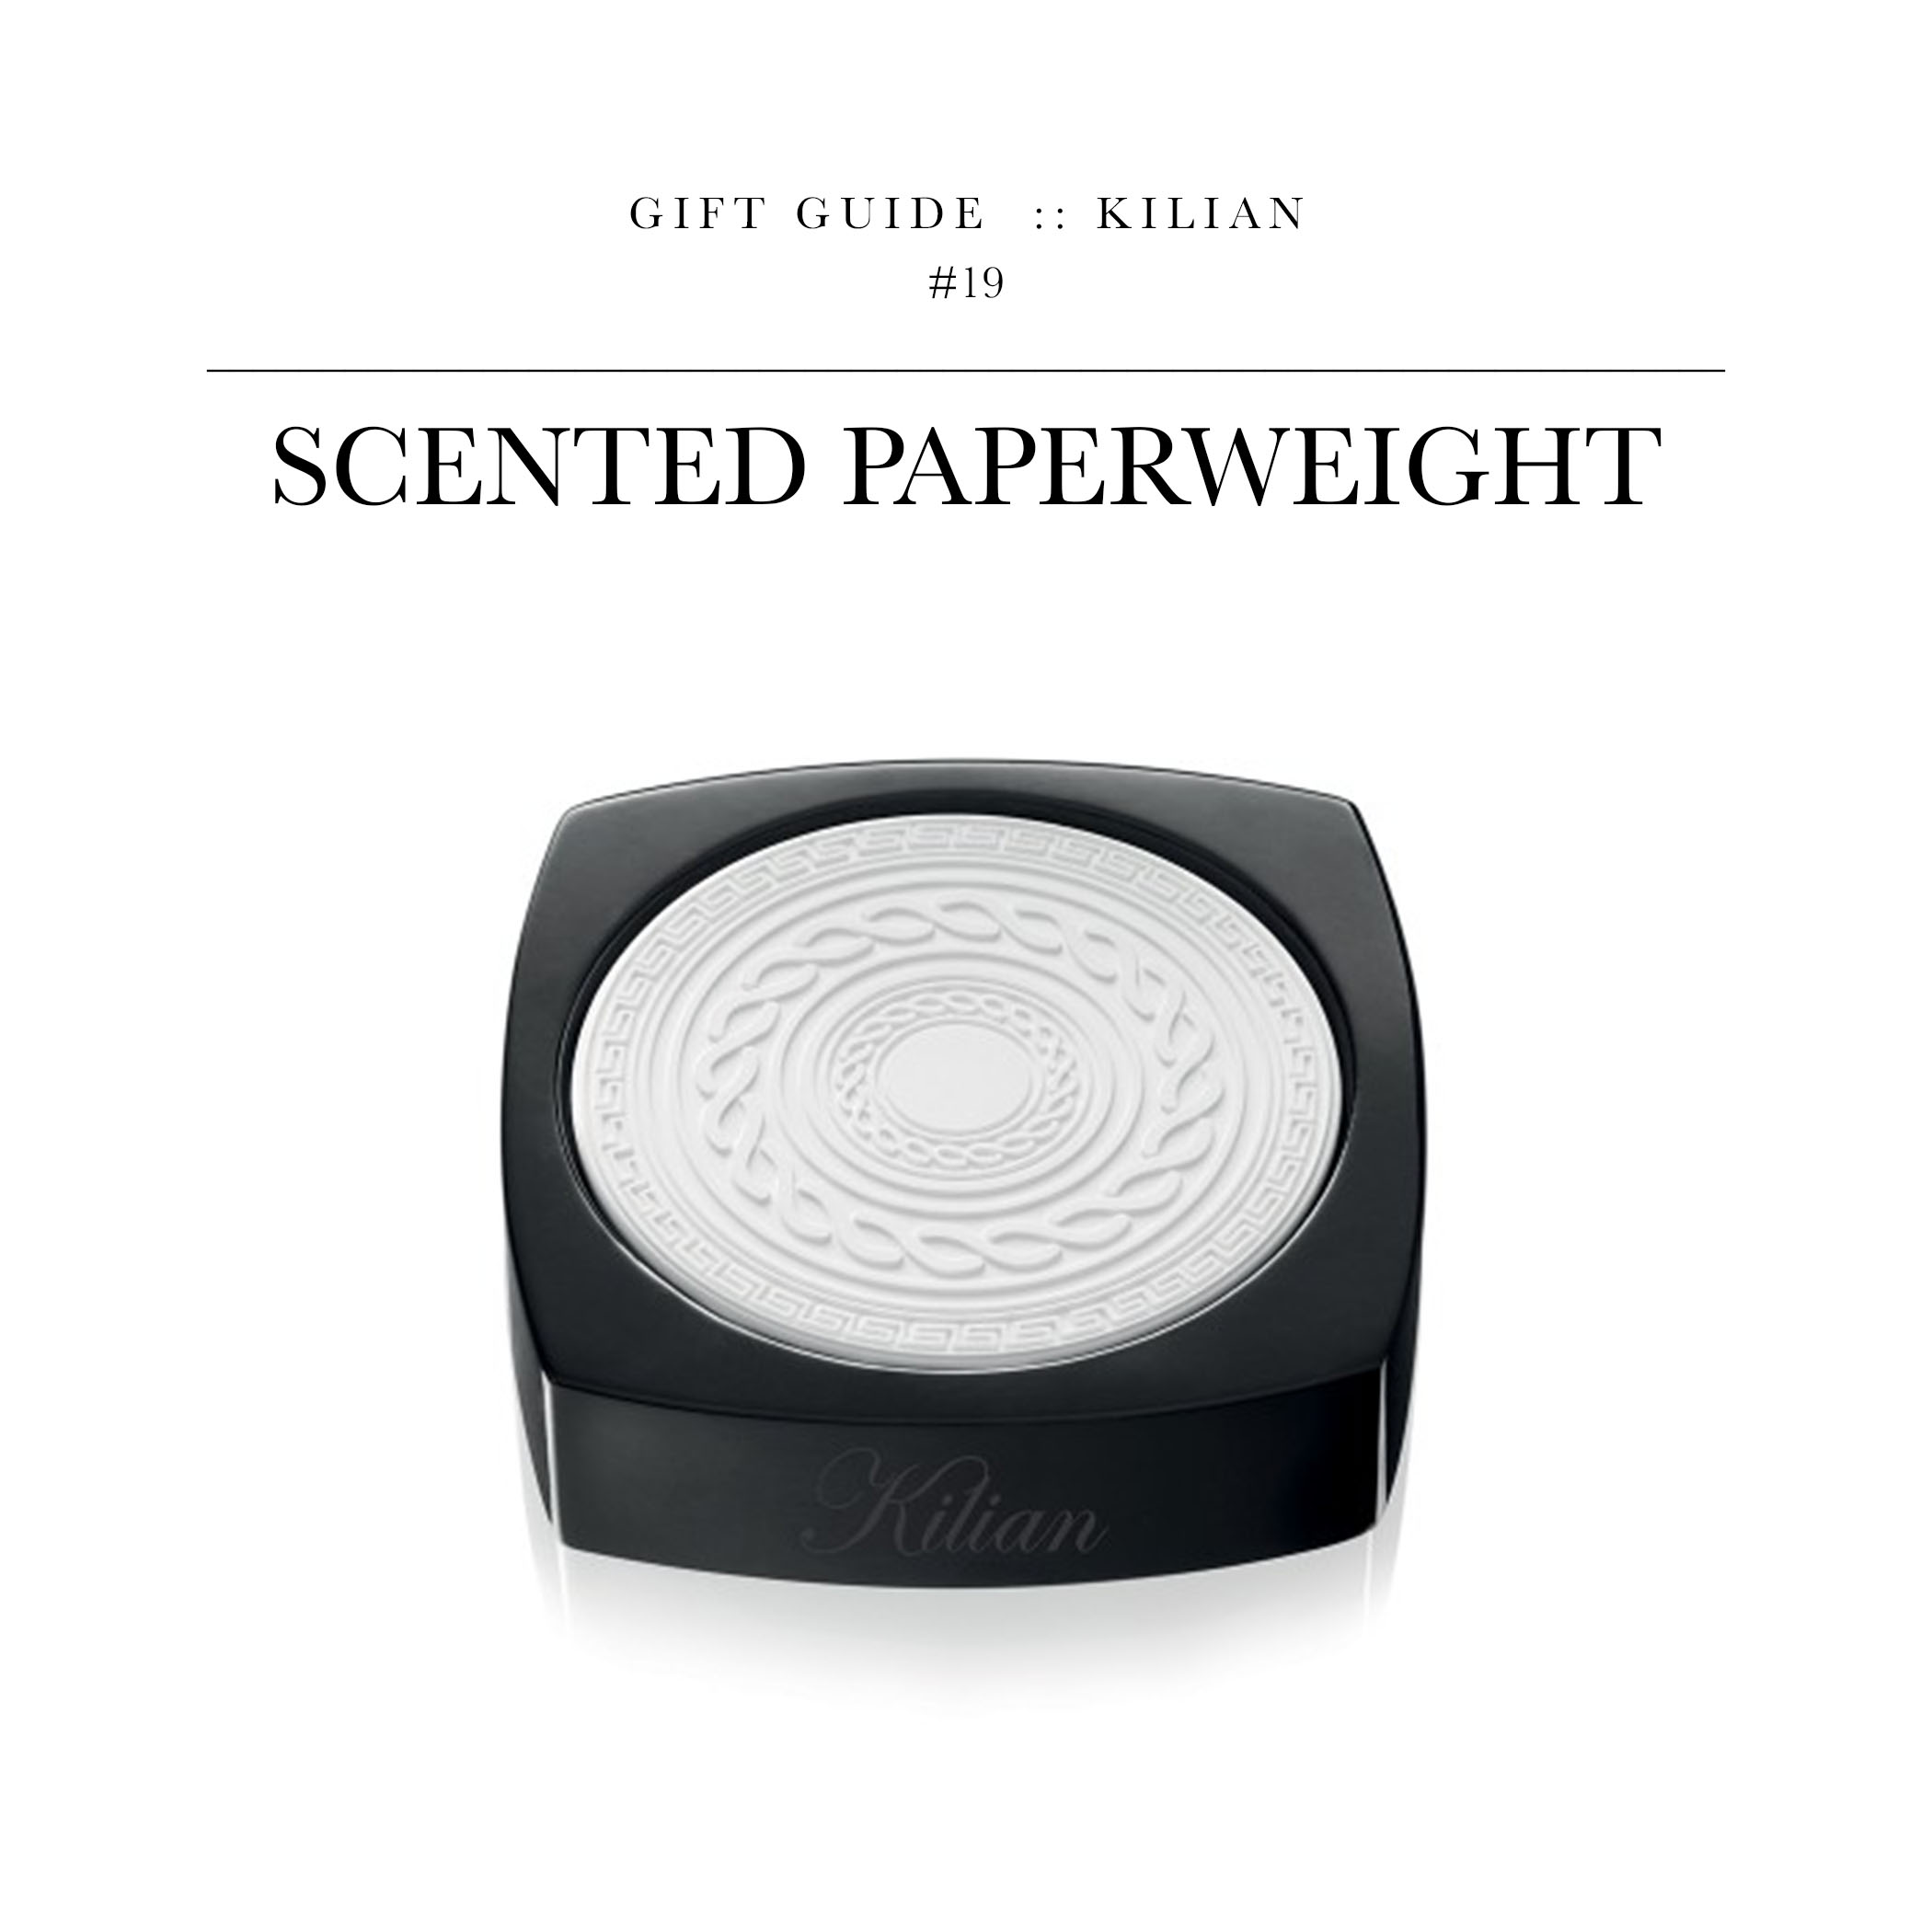 Scented Paperweight  via Kilian // A paperweight with a light weight.  She definitely doesn't have this...